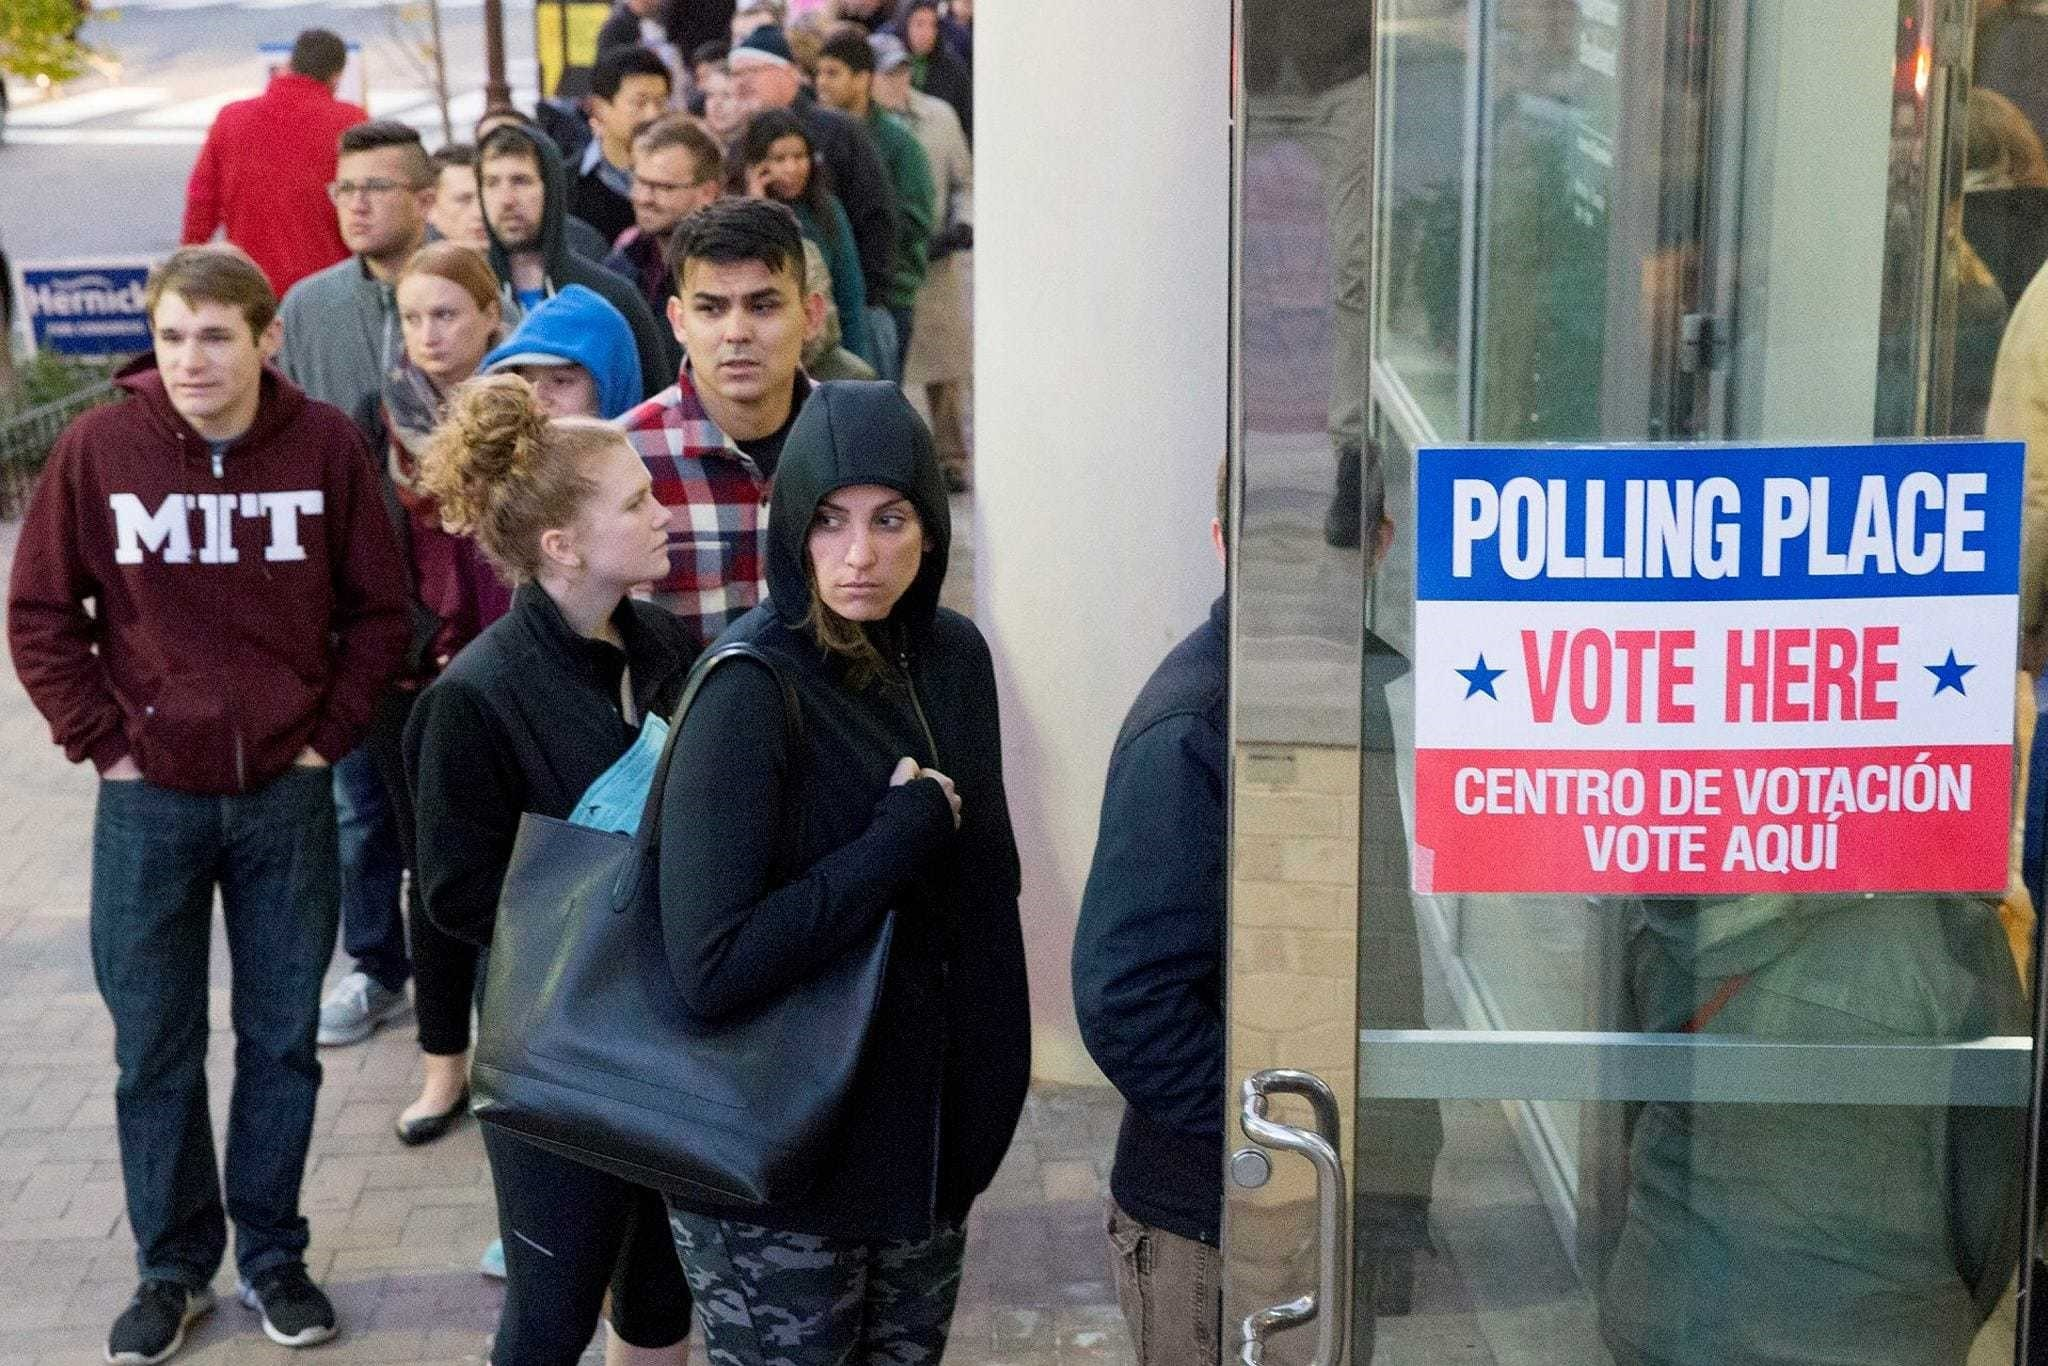 People wait in a line to enter a polling station to vote in the 2016 U.S. presidential election, in Arlington, Virginia, Nov. 8.